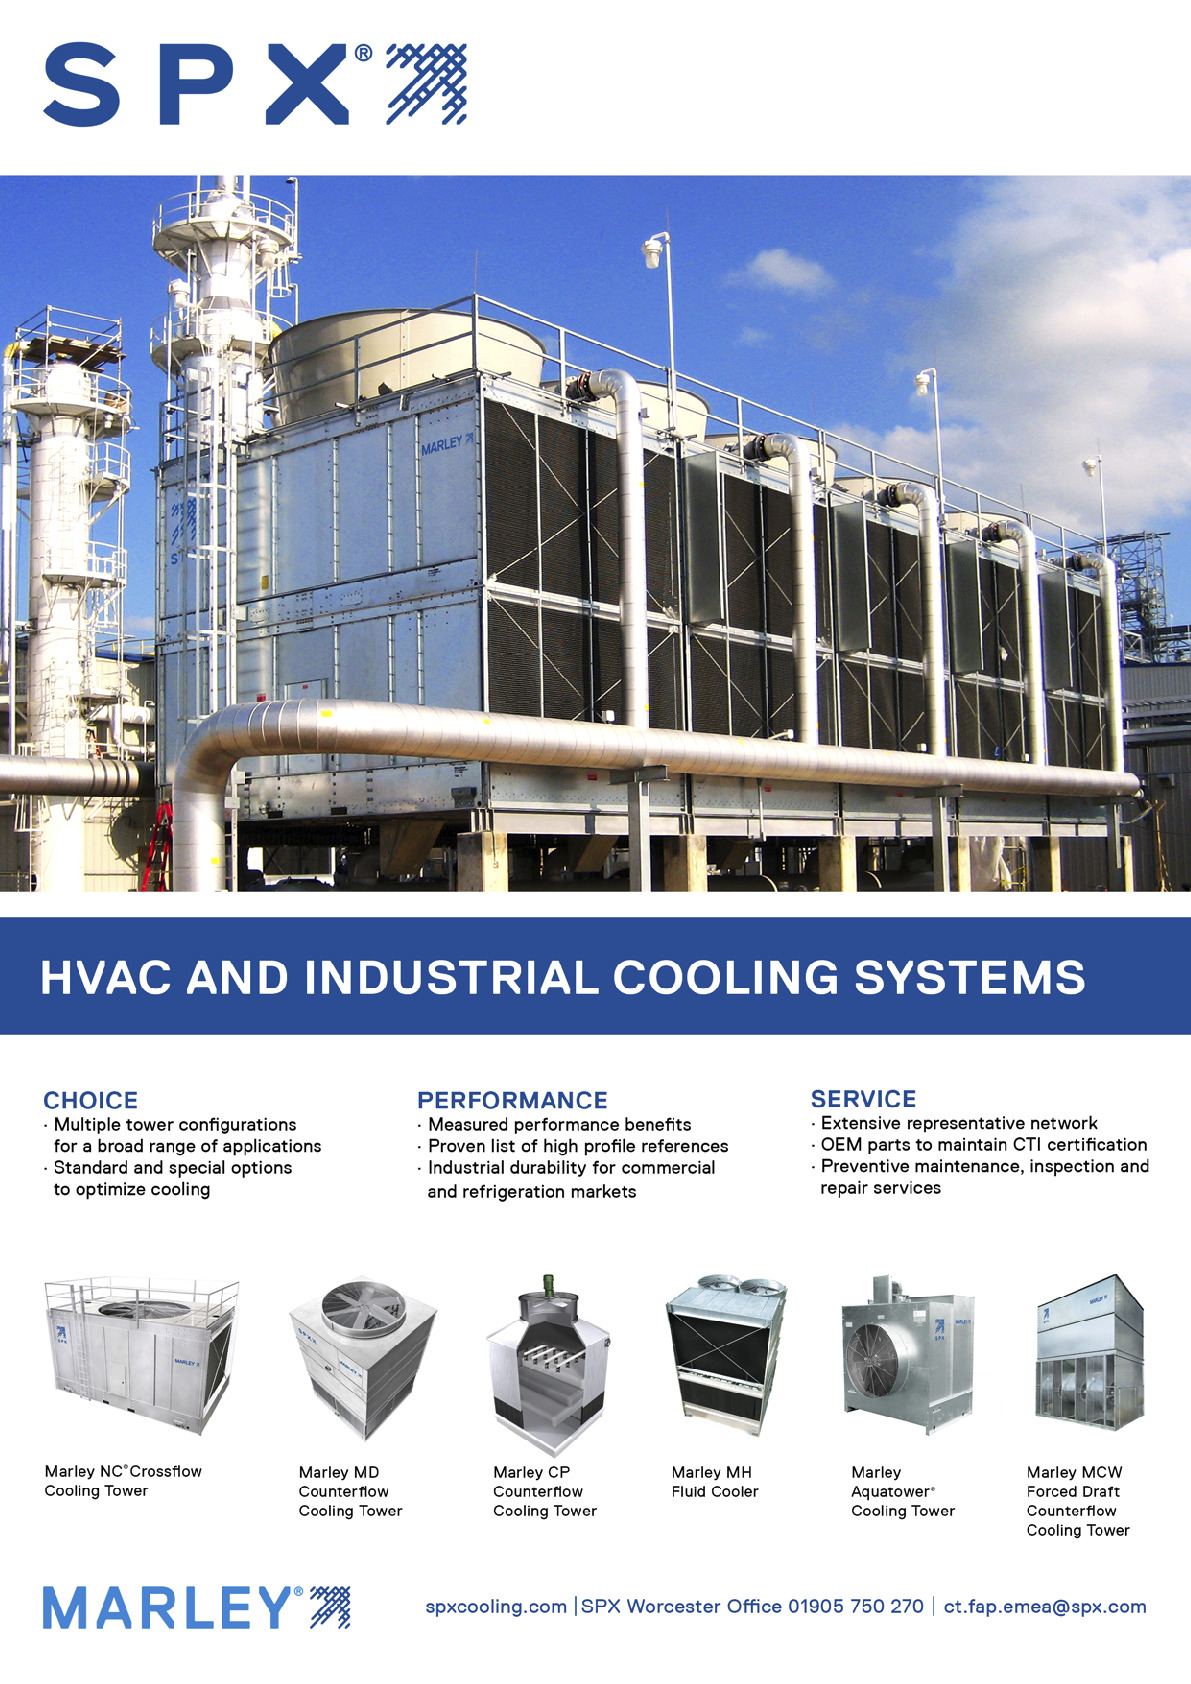 Spx Cooling Technologies Ltd advertisement thumbnail